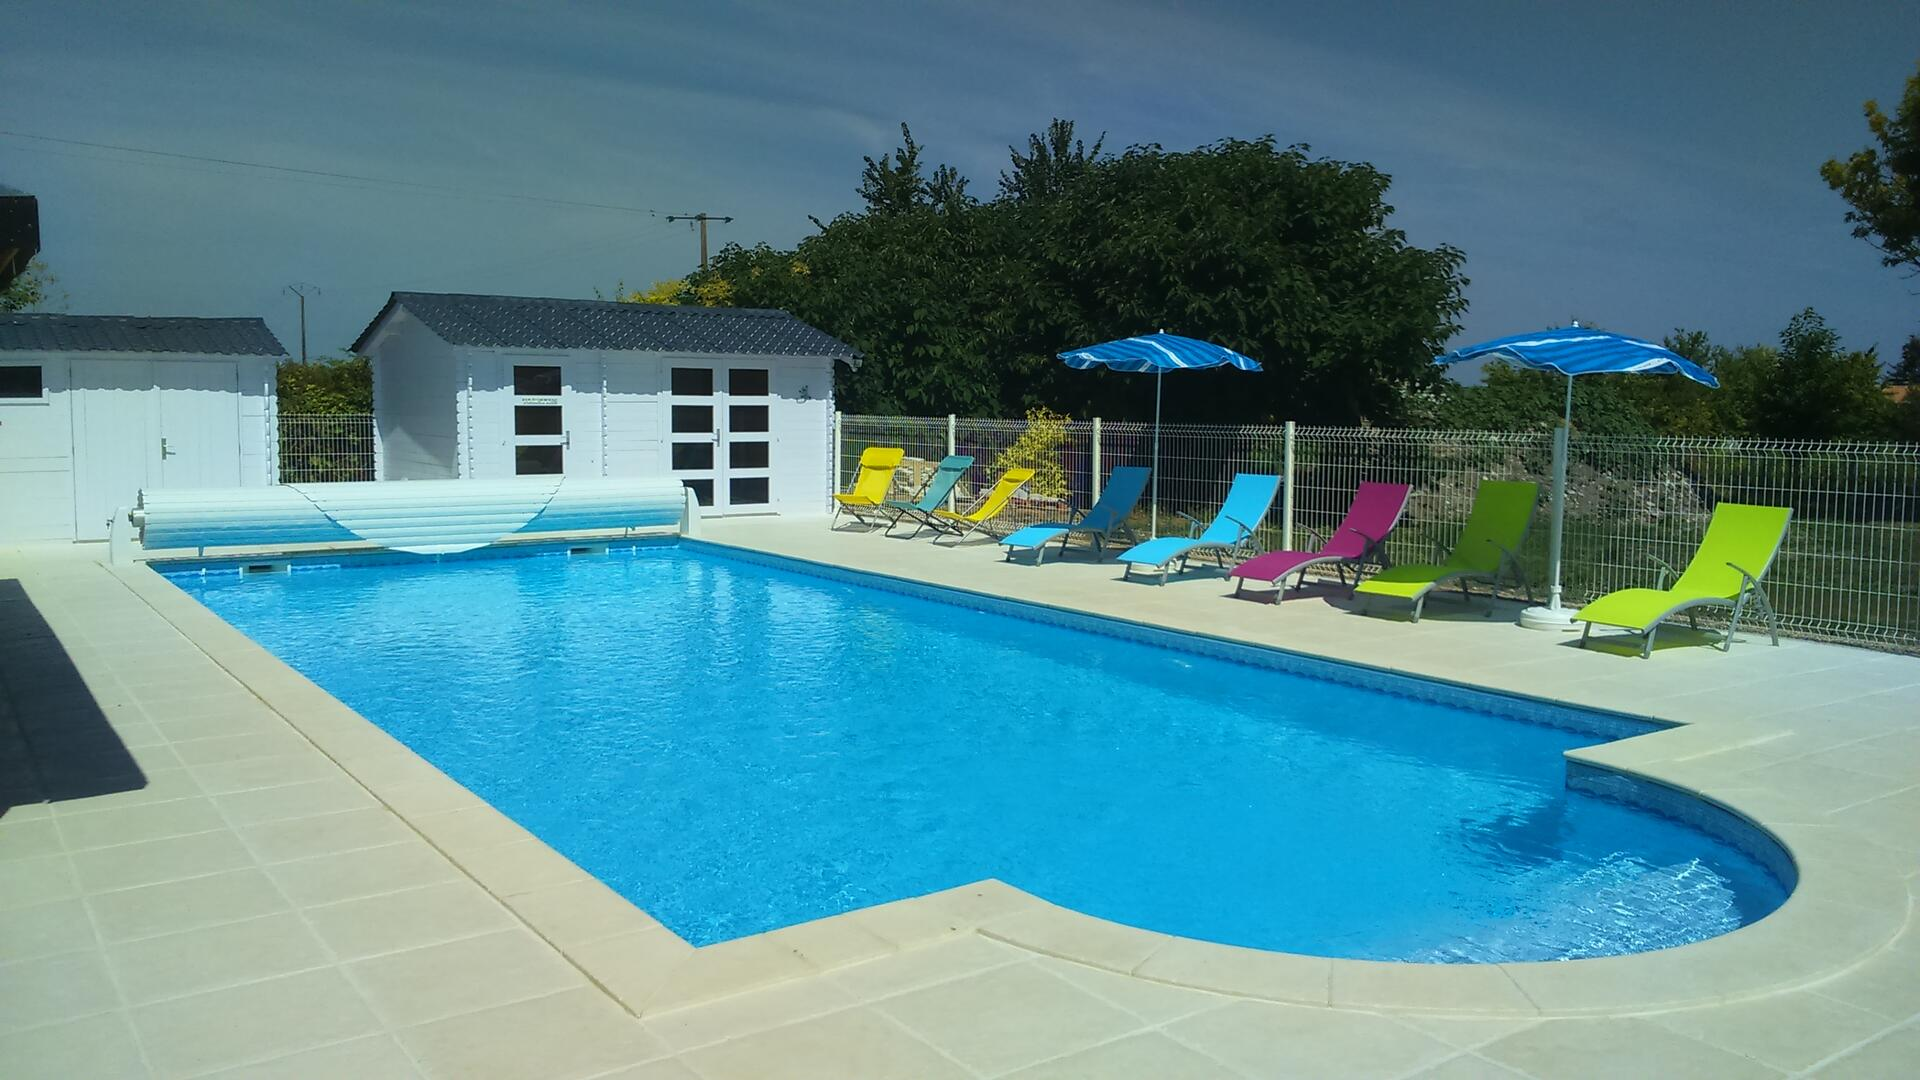 9 Bedroom Gite complex in Poitou-Charentes, France